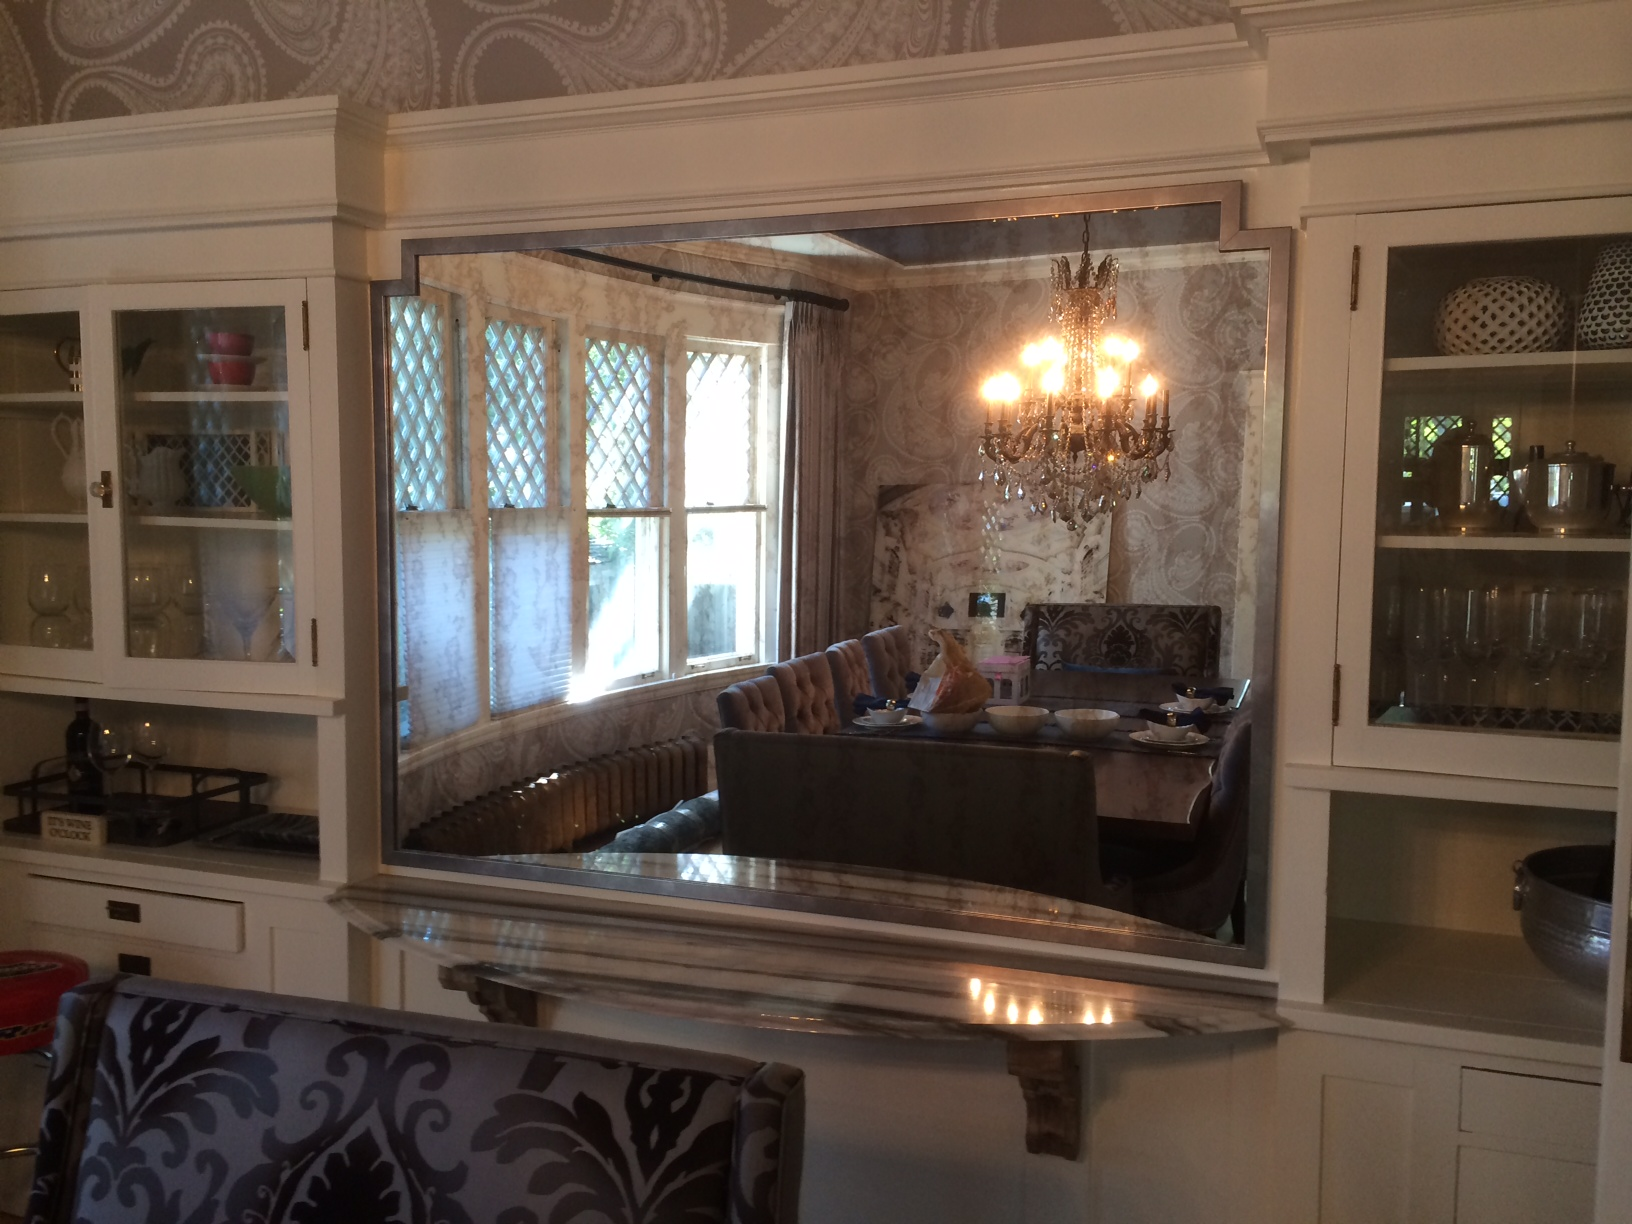 round shui mirror agreeable refulbished candles furniture on feng mantel size above fireplace my hanging pinterest fireplaces over superstition proportions houzz window licious rules images mirrors with